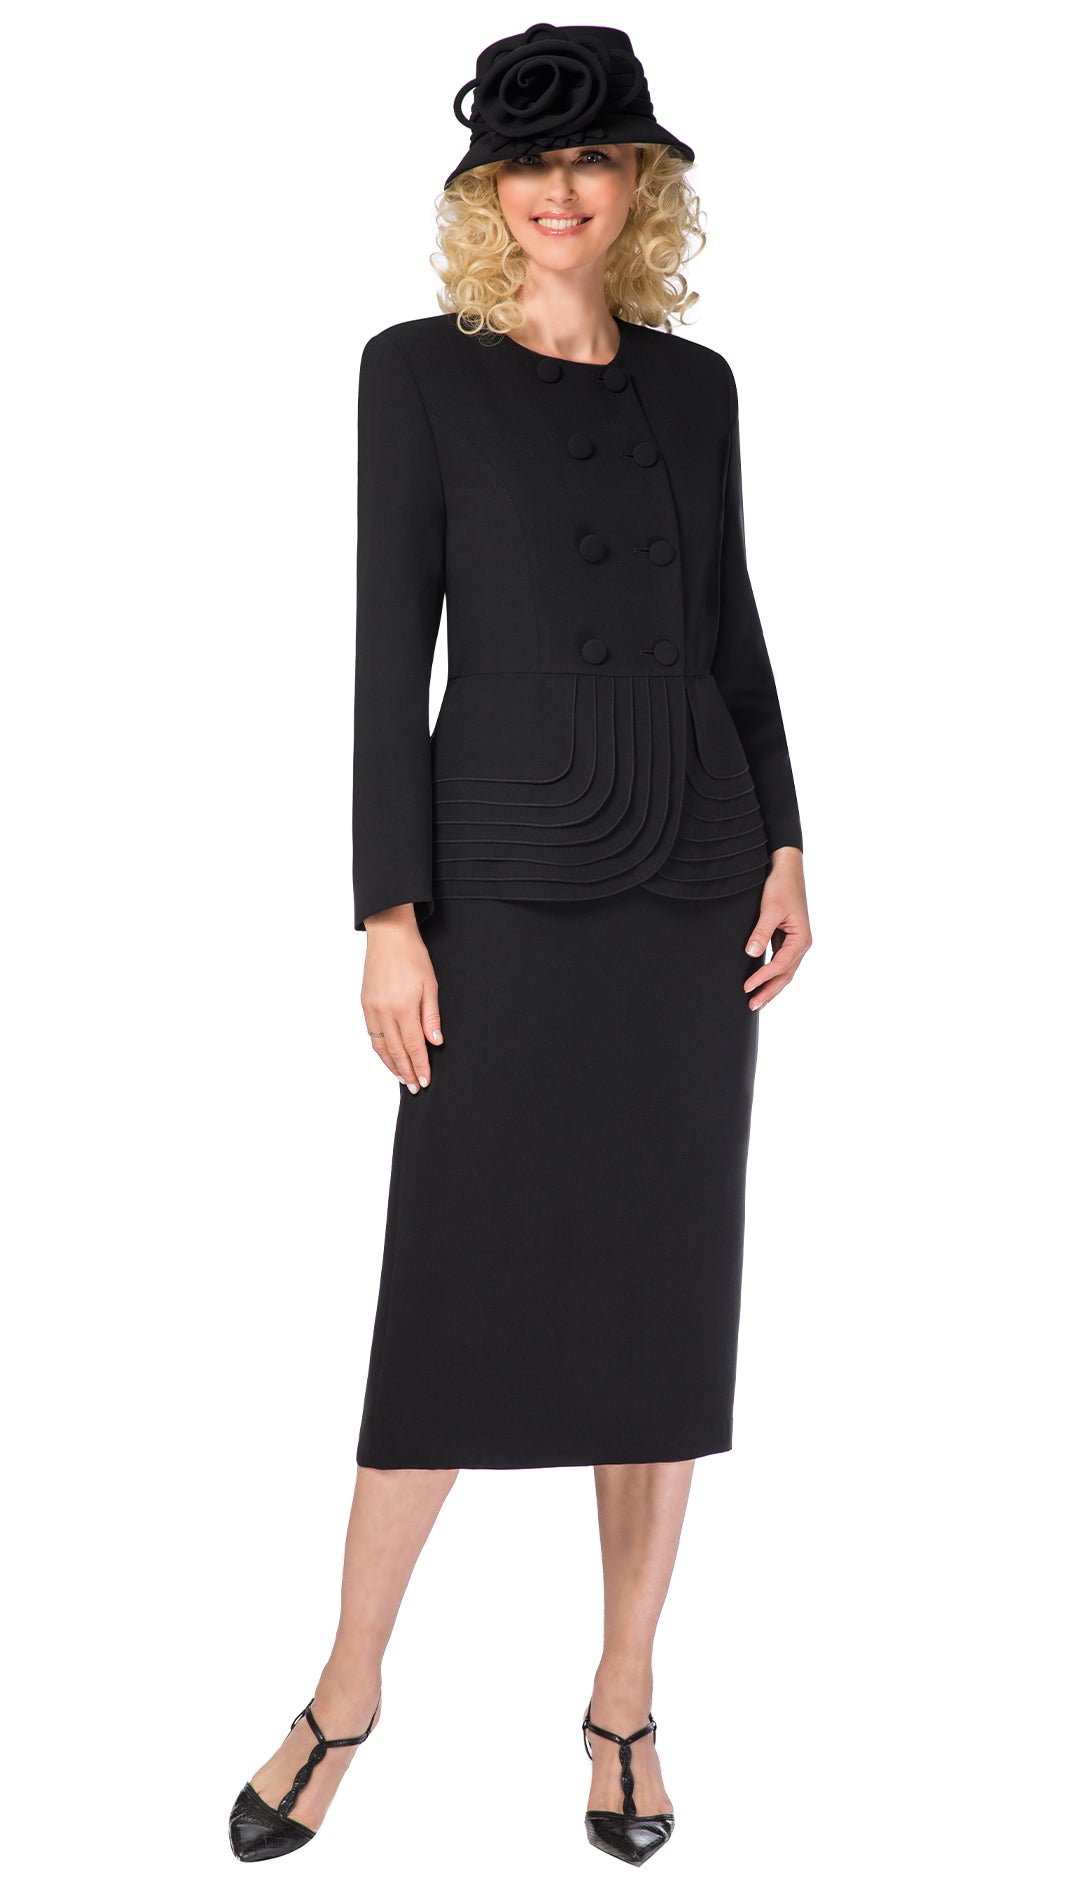 Giovanna Usher Suit 0902-Black - Church Suits For Less